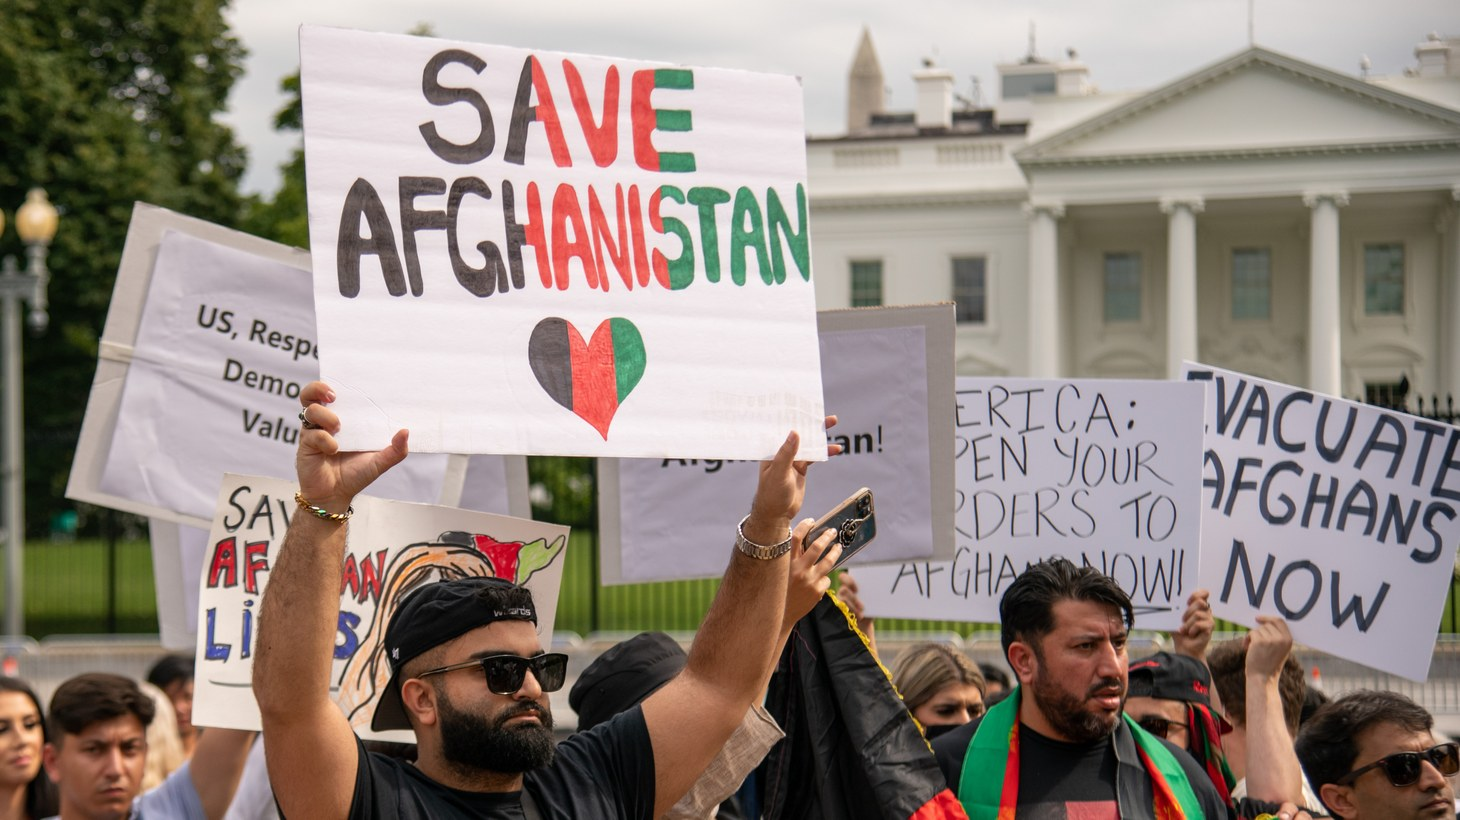 Protesters gather in support of the Afghan people in Lafayette Square in Washington, D.C. on August 15, 2021. This protest occurred hours after the Taliban gained control of the city of Kabul, Afghanistan's capital.